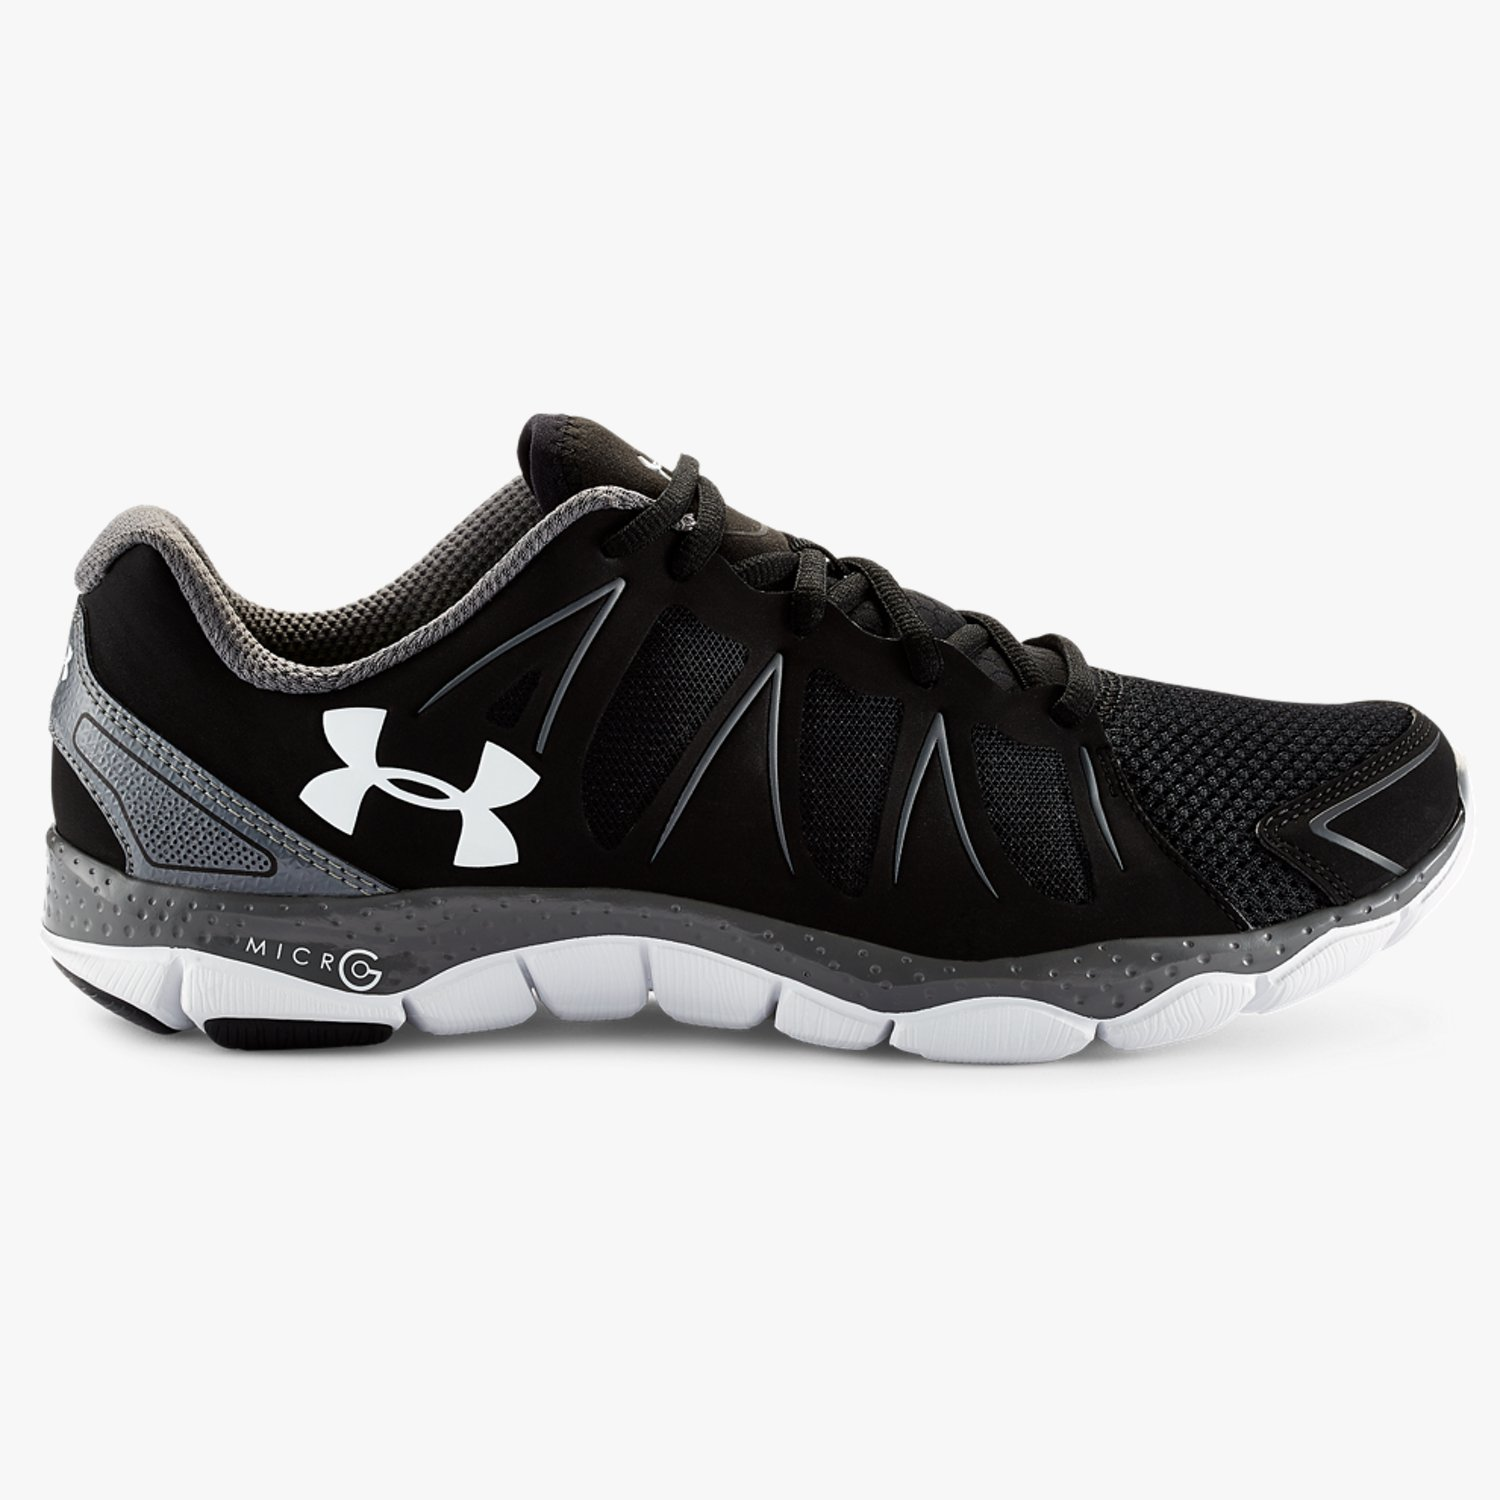 Under Armour UA Micro G Engage II Running Shoes Black/Graphite/White-30